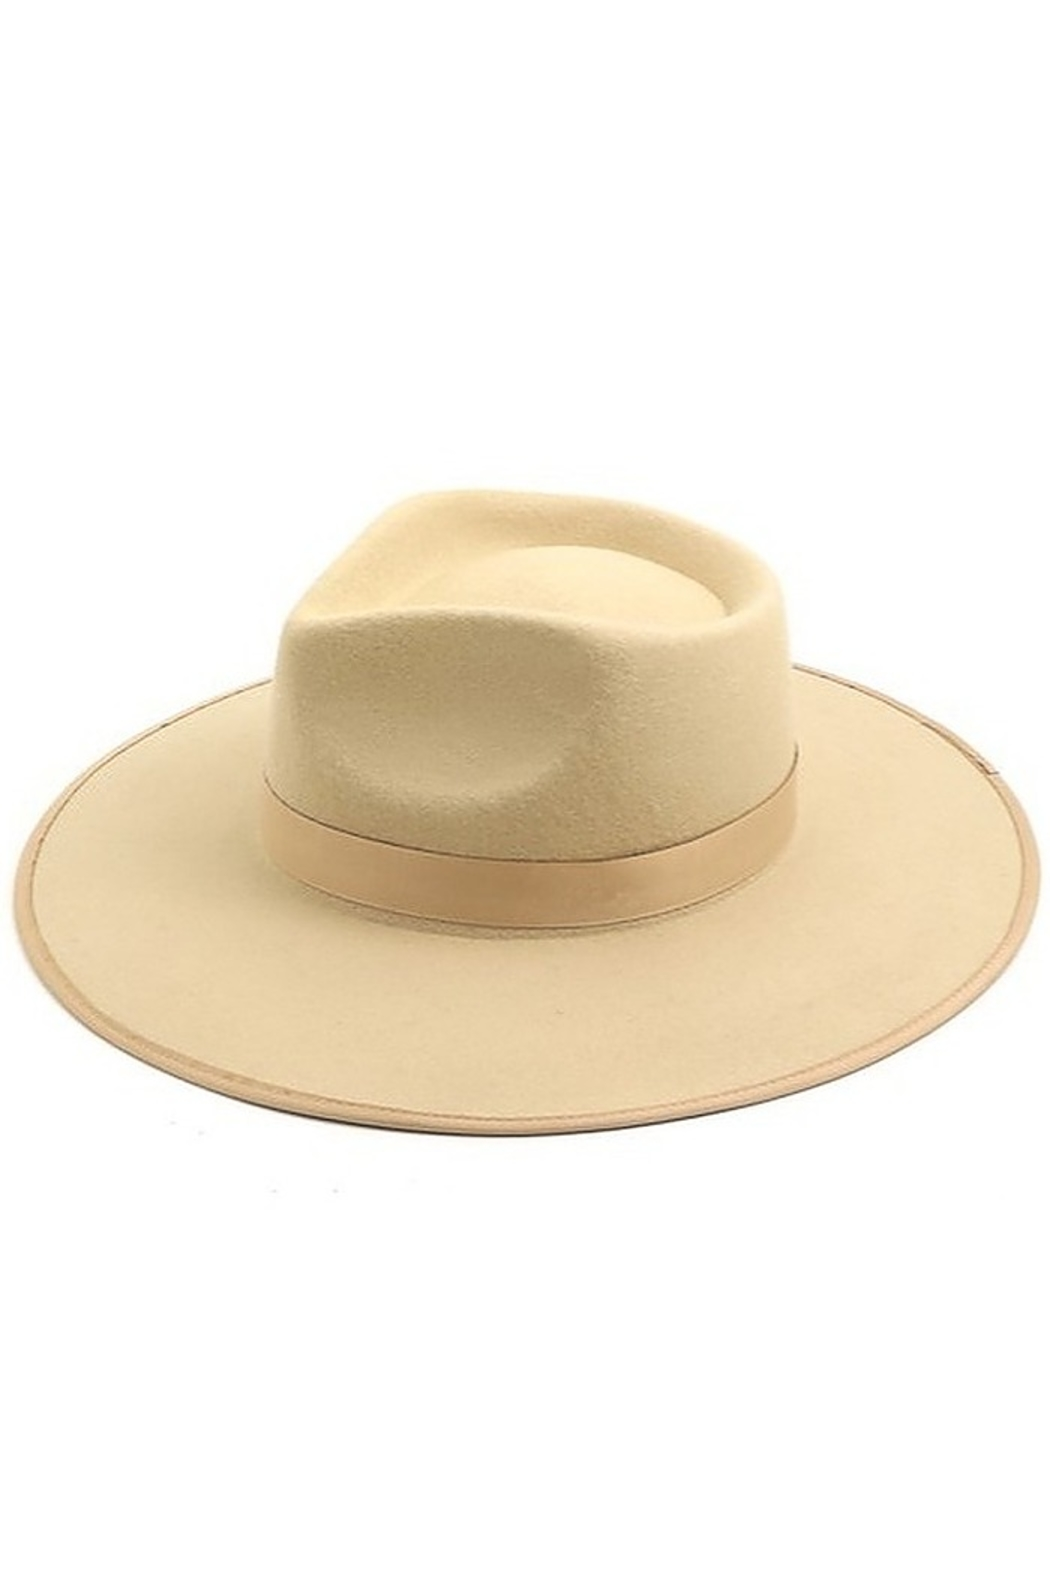 Fame Accessories Flat Brim Fedora - Front Cropped Image